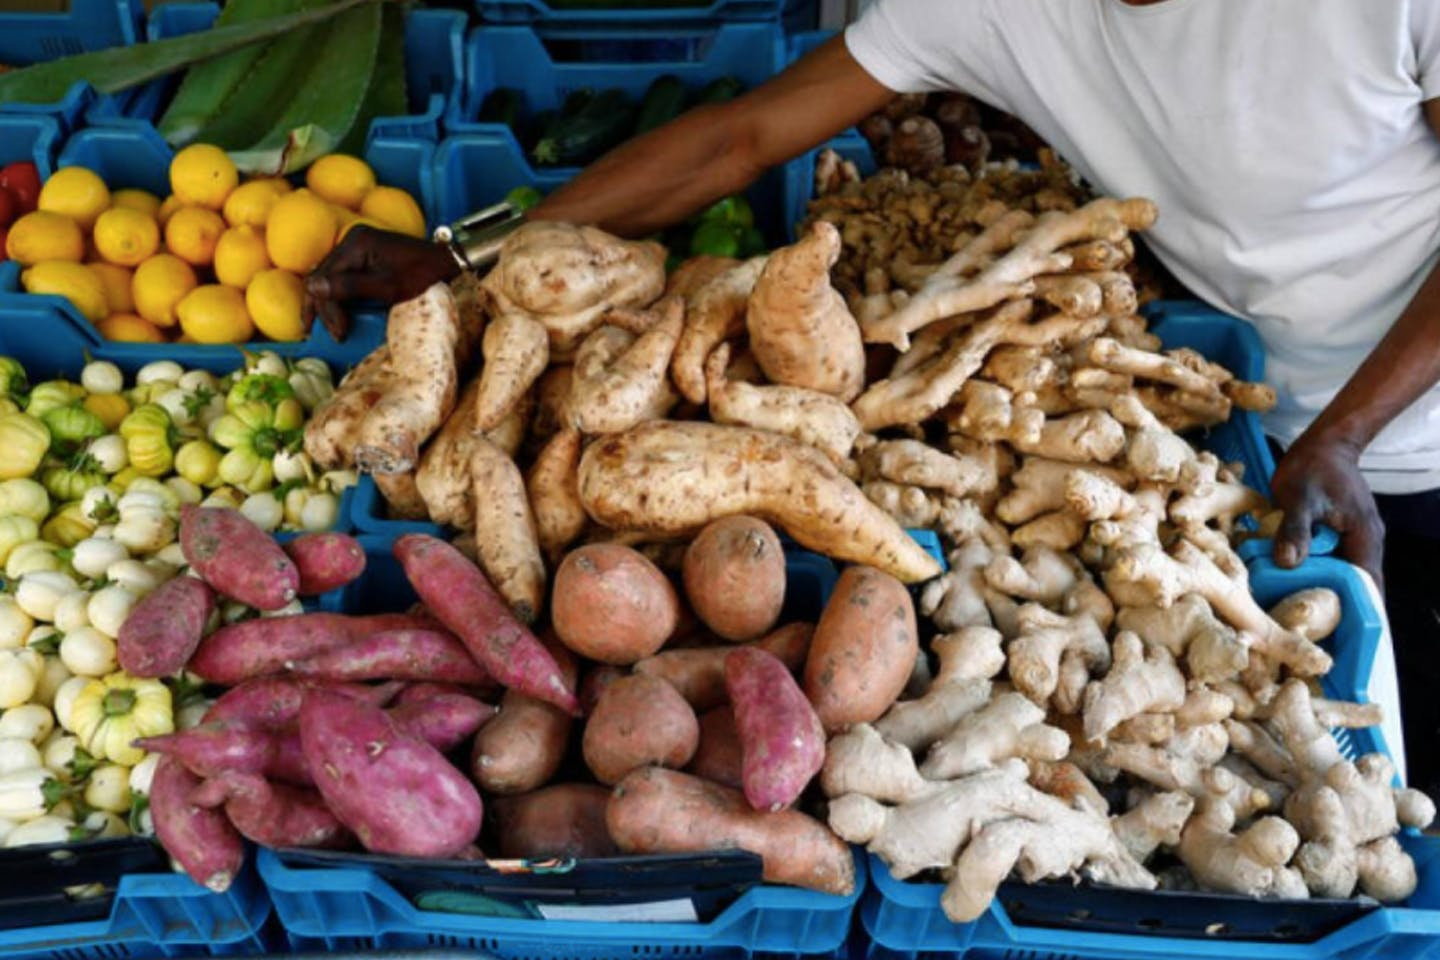 Vegetables and fruits, including manioc and sweet potatoes, are displayed in a grocery store